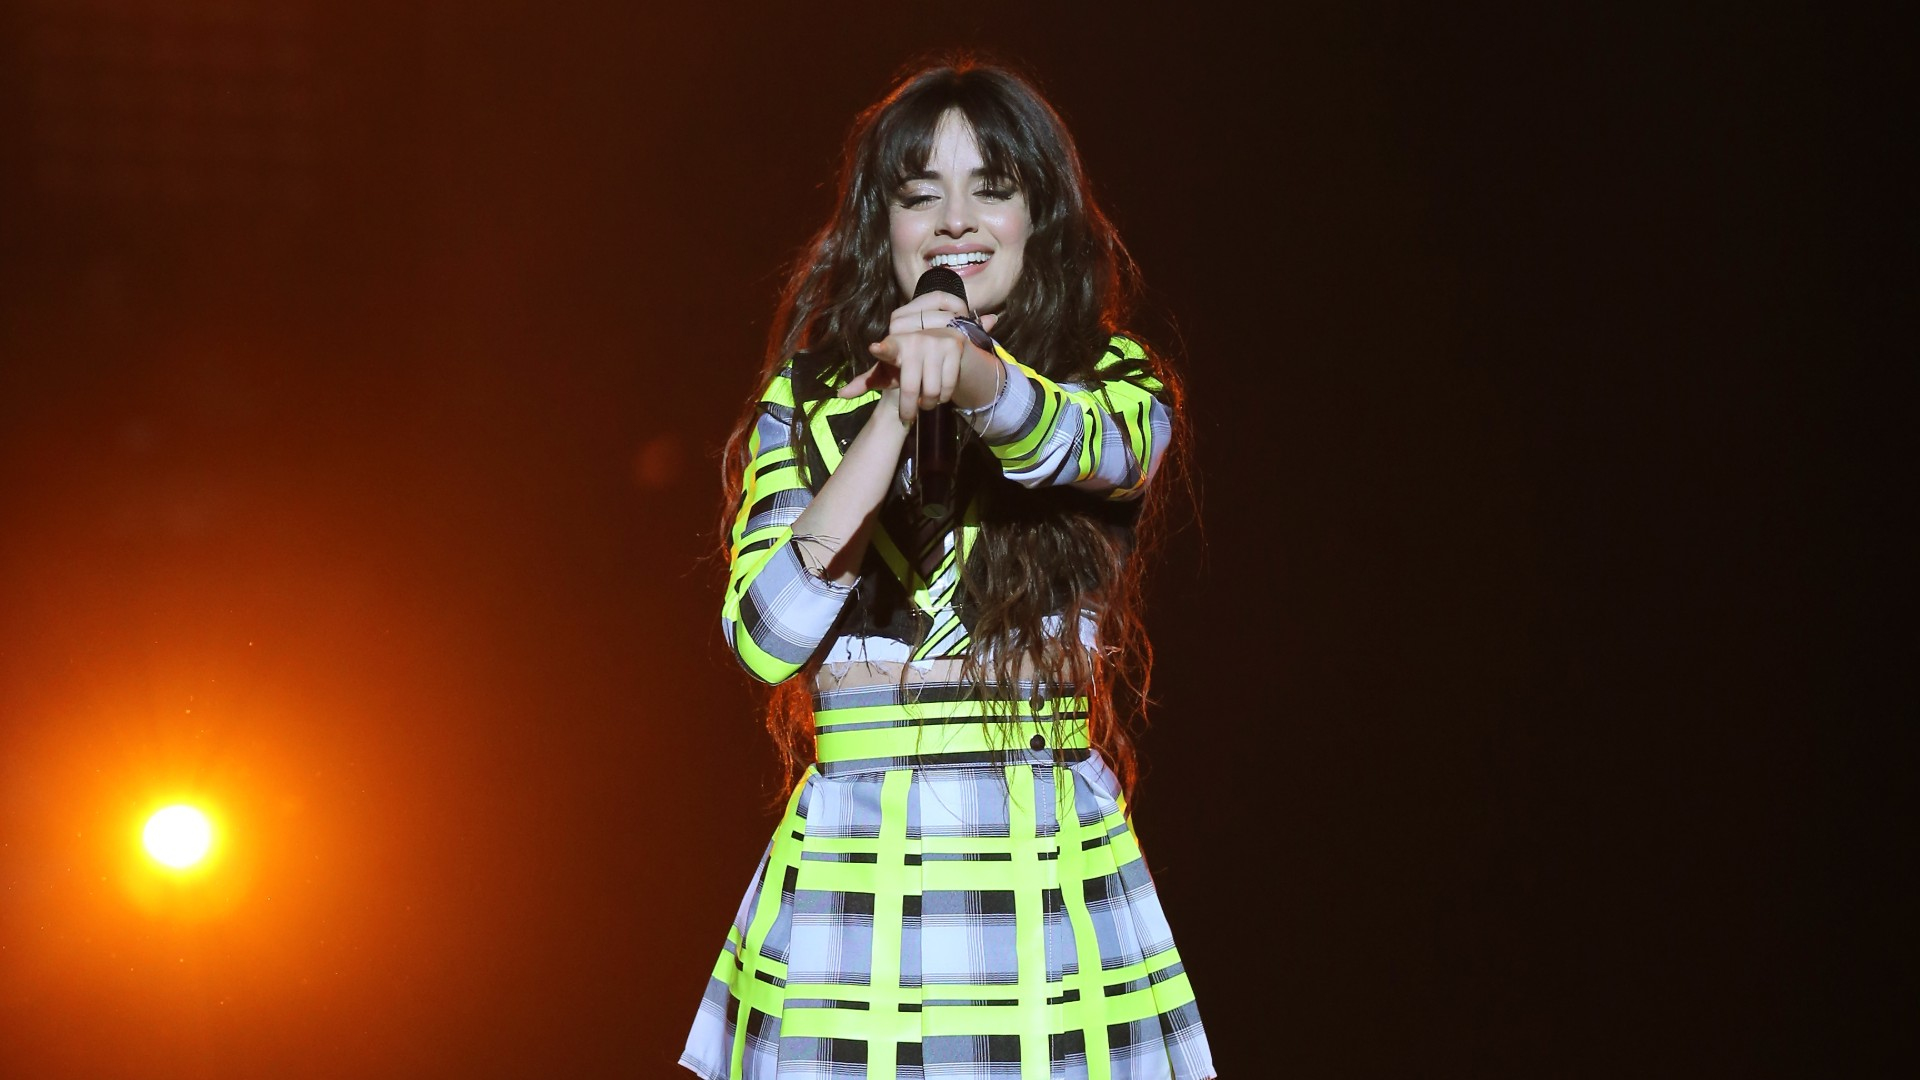 Camila Cabello Encourages Her Followers to Participate in the 2020 Elections